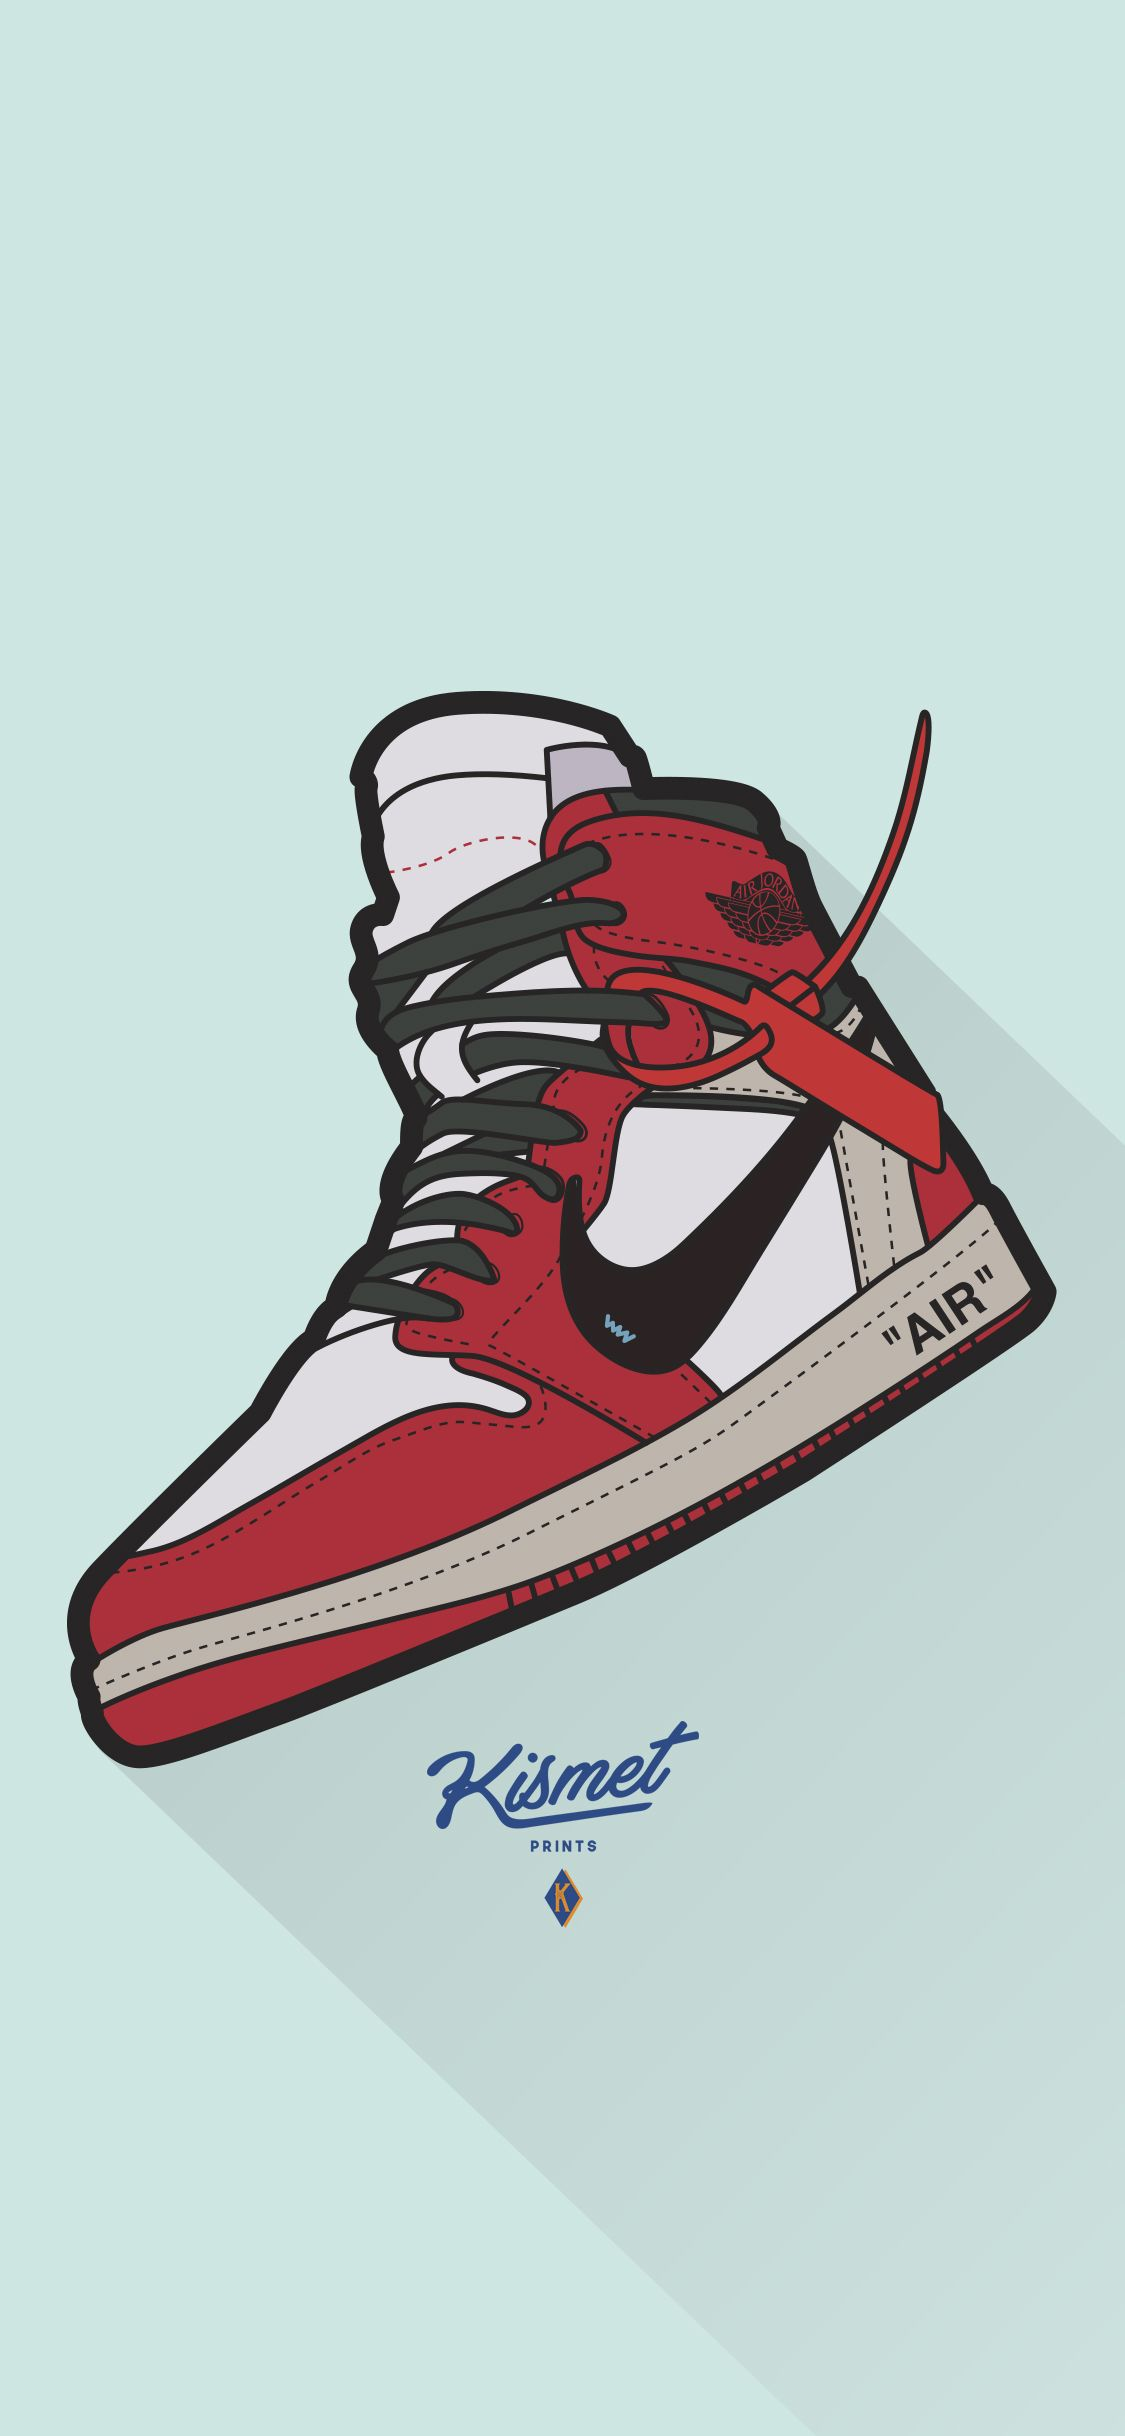 Jordan Digital Print Nike Air Jordan Off White Supreme Etsy Sneakers Wallpaper Streetwear Wallpaper Sneaker Art